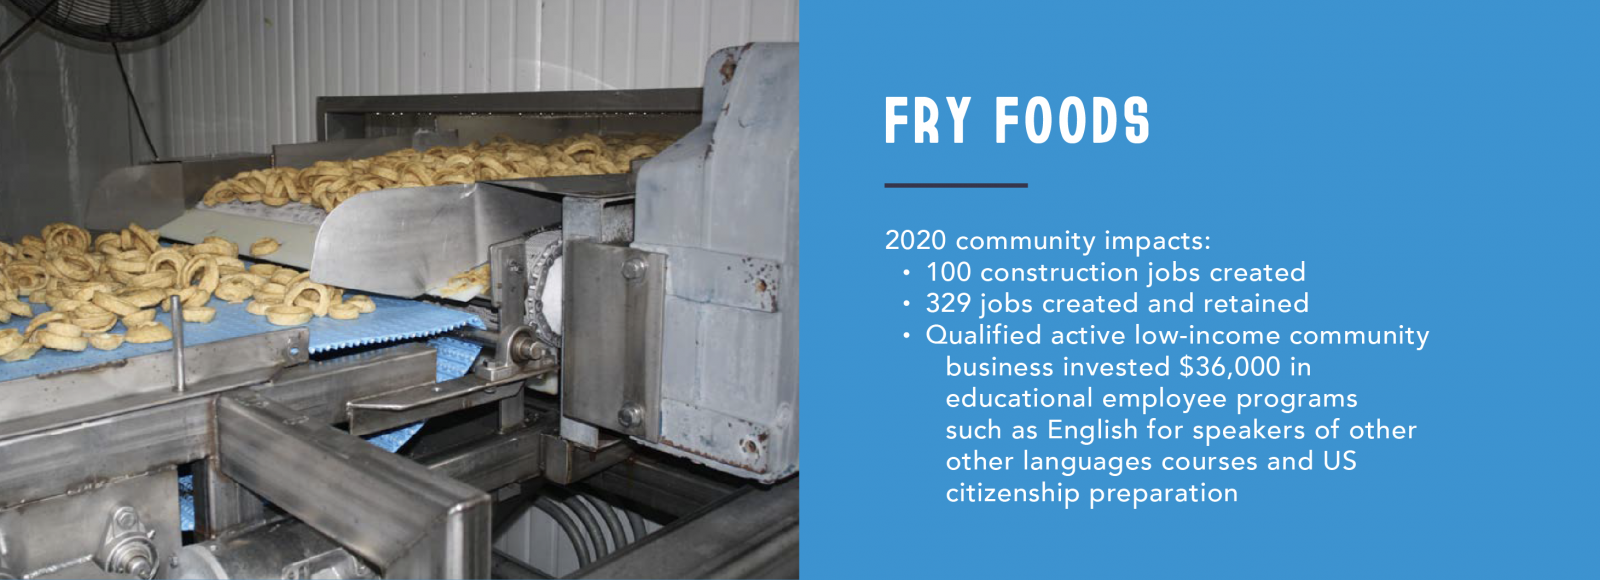 A photo next to a graphic of white text on a blue background. The photo shows machinery next to an industrial conveyor belt, which is covered in battered onion rings. The white text reads: Fry Foods / 2020 community impacts: / 100 construction jobs created / 329 jobs created and retained / Qualified active low-income ocmmunity business invested $36,000 in educational employee programs such as English for speakers of other languages courses and US citizenship preparation